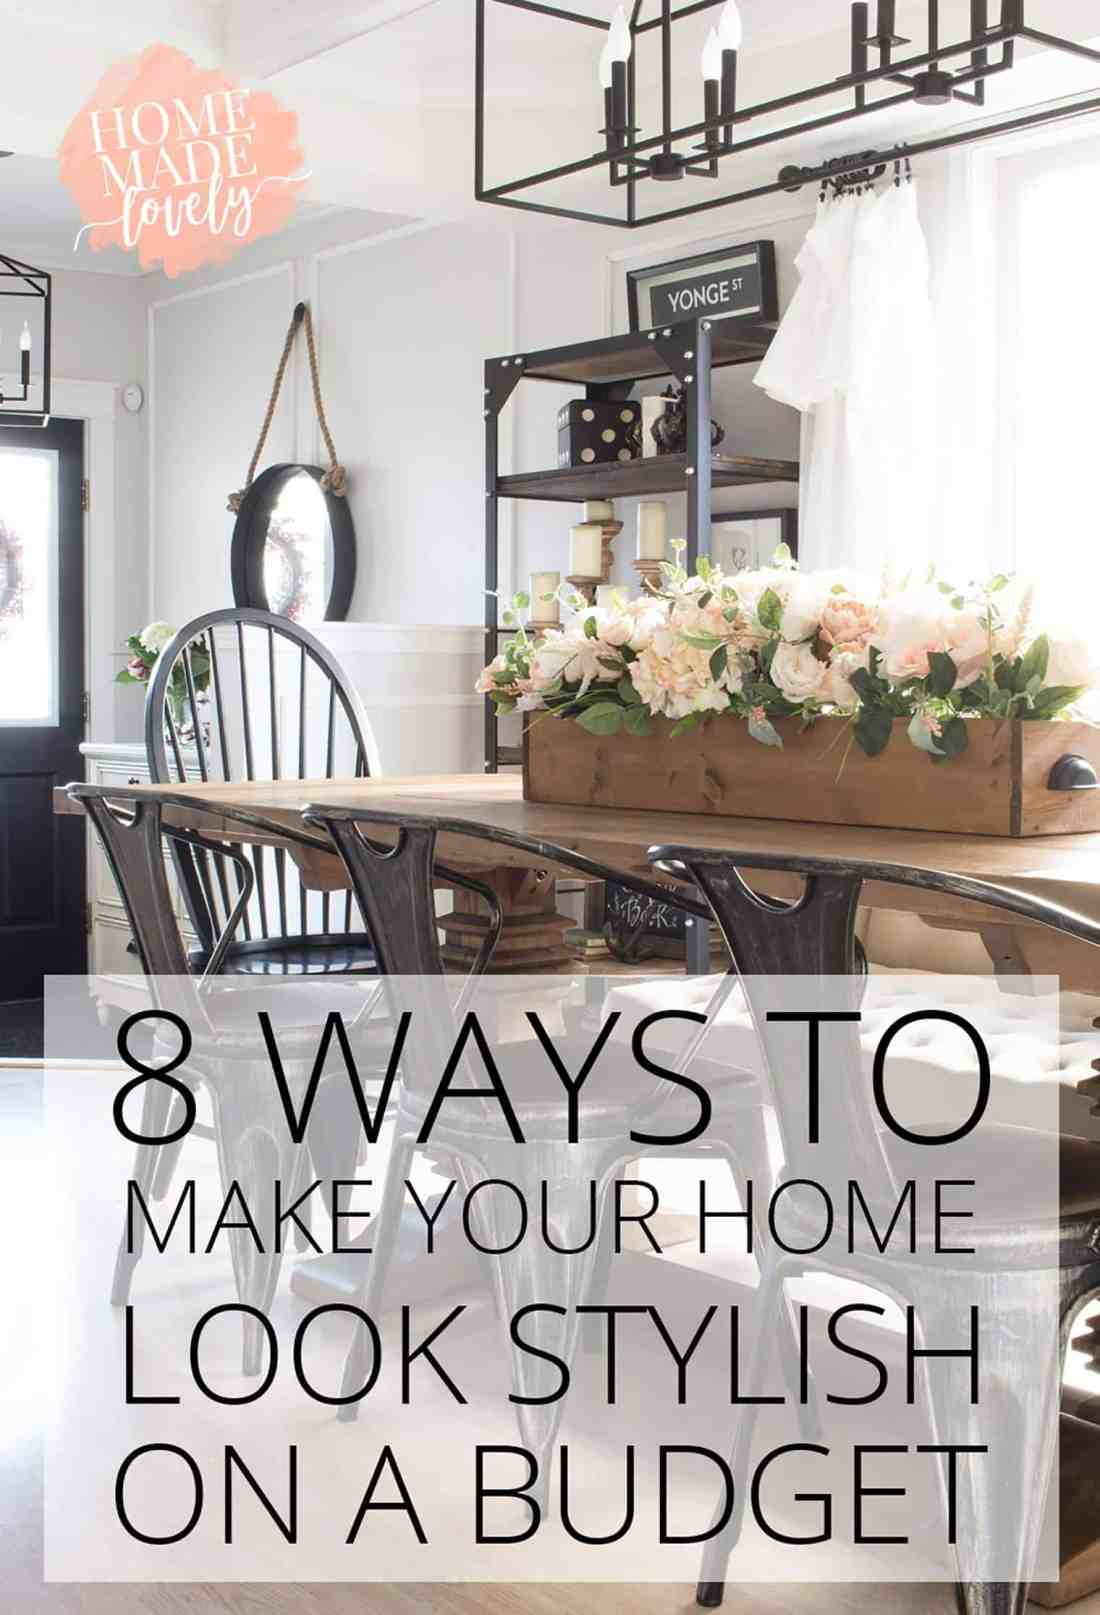 Let's face it, we don't all have huge budgets for making our homes cozy and beautiful. Sometimes we all need a few tricks up our sleeve, ways to make our homes look stylish on a budget, right?